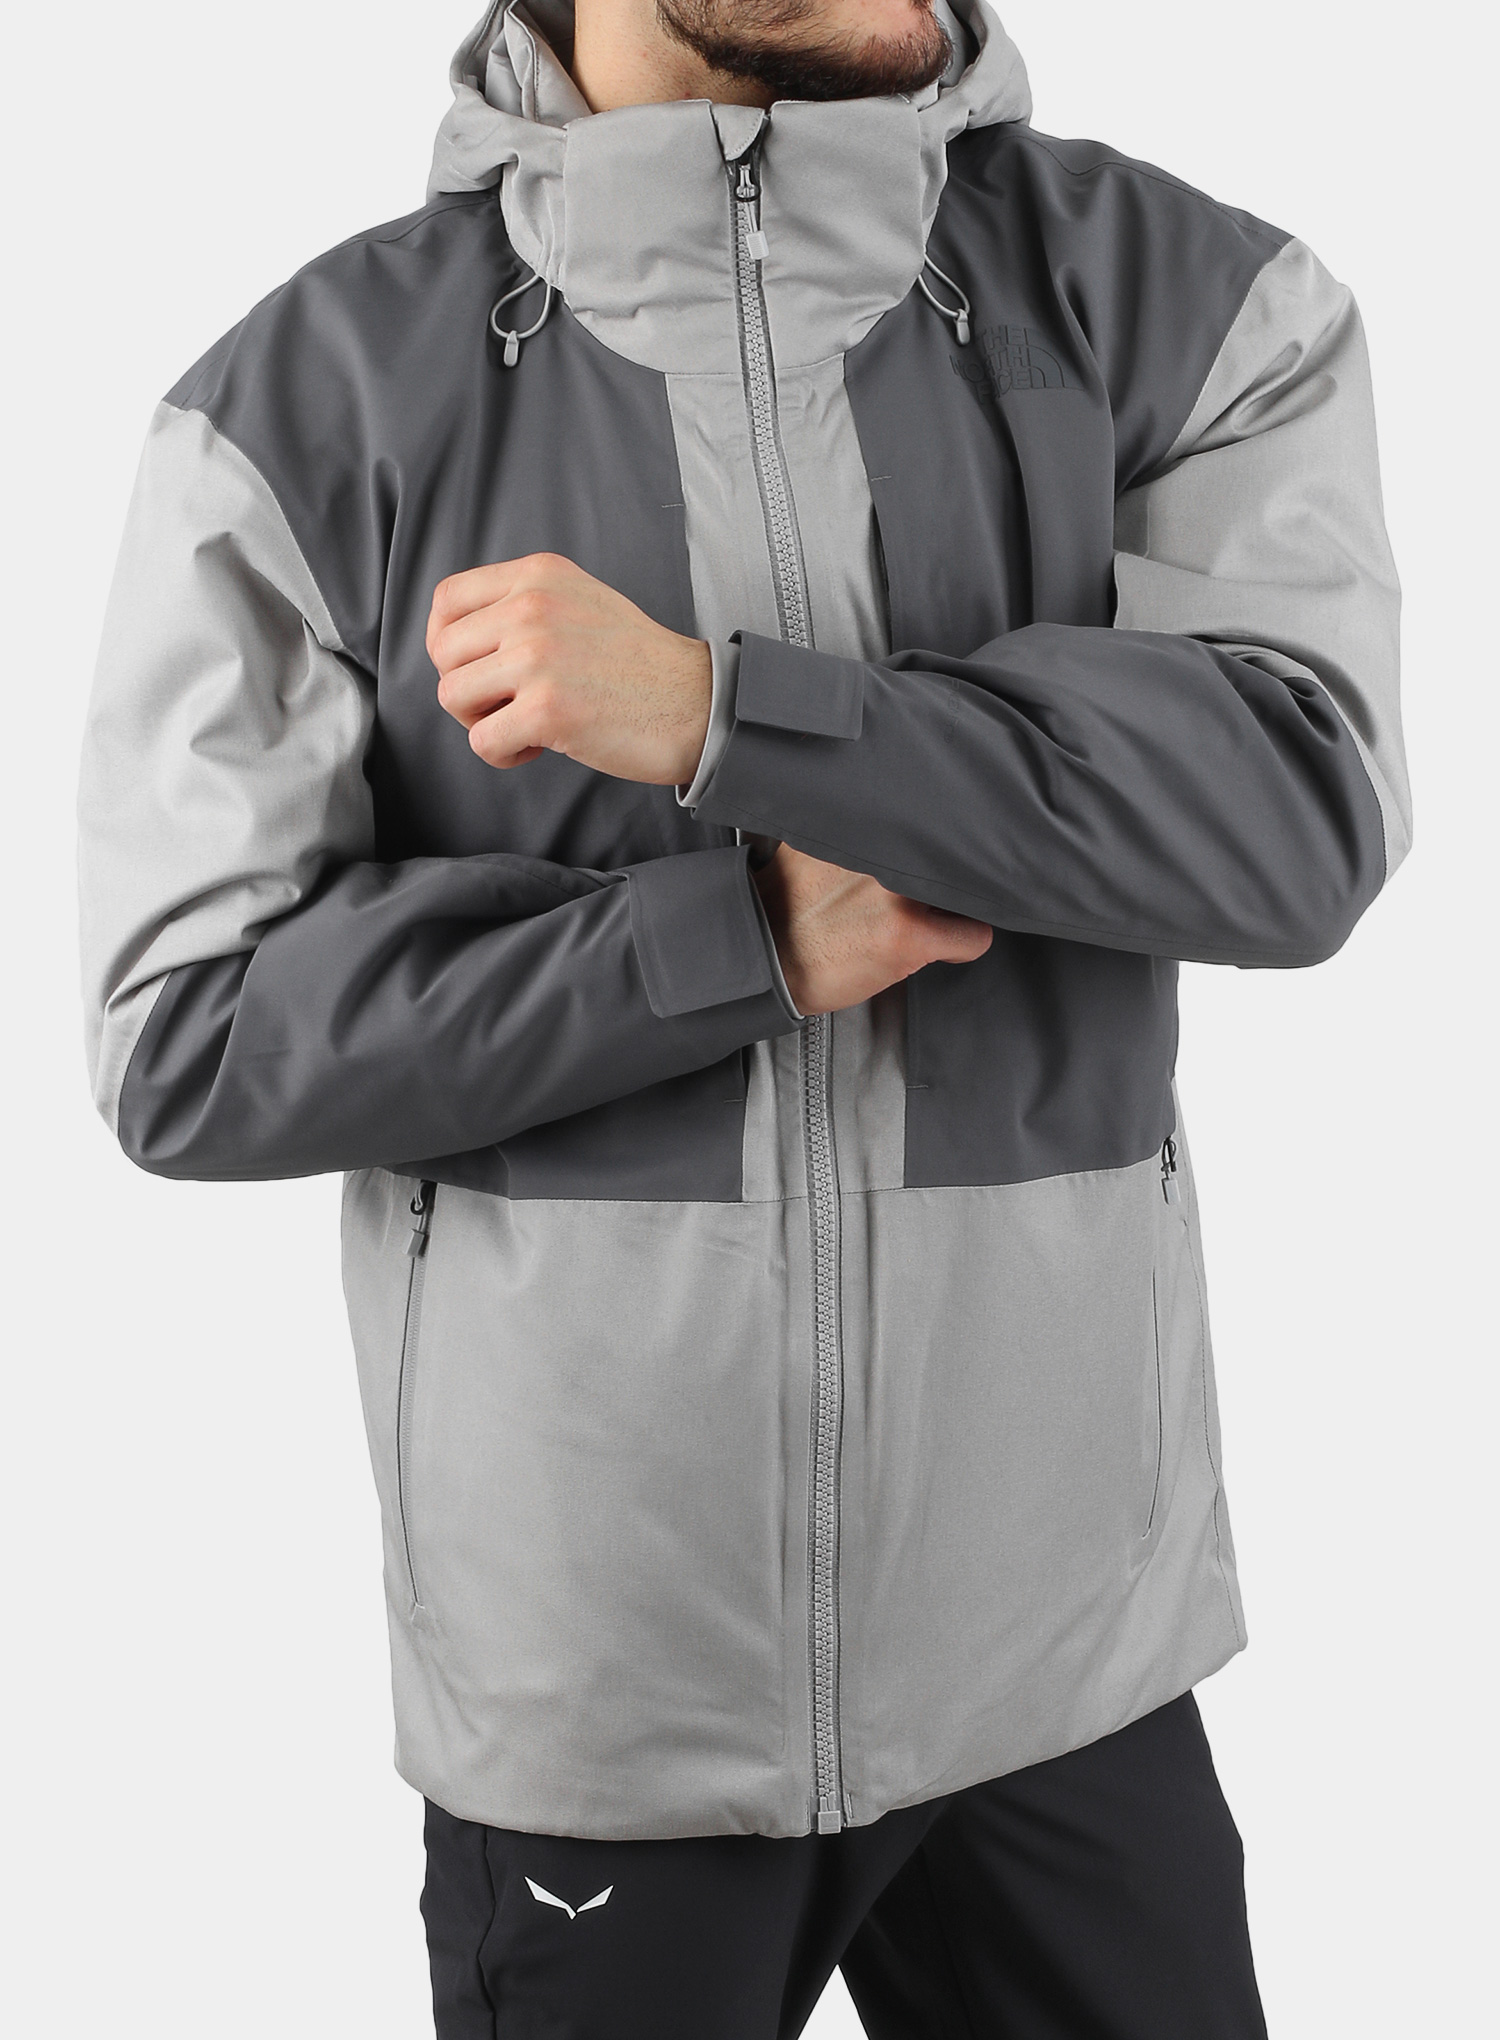 Kurtka The North Face Chakal Jacket - meld grey/vanadis grey - zdjęcie nr. 4